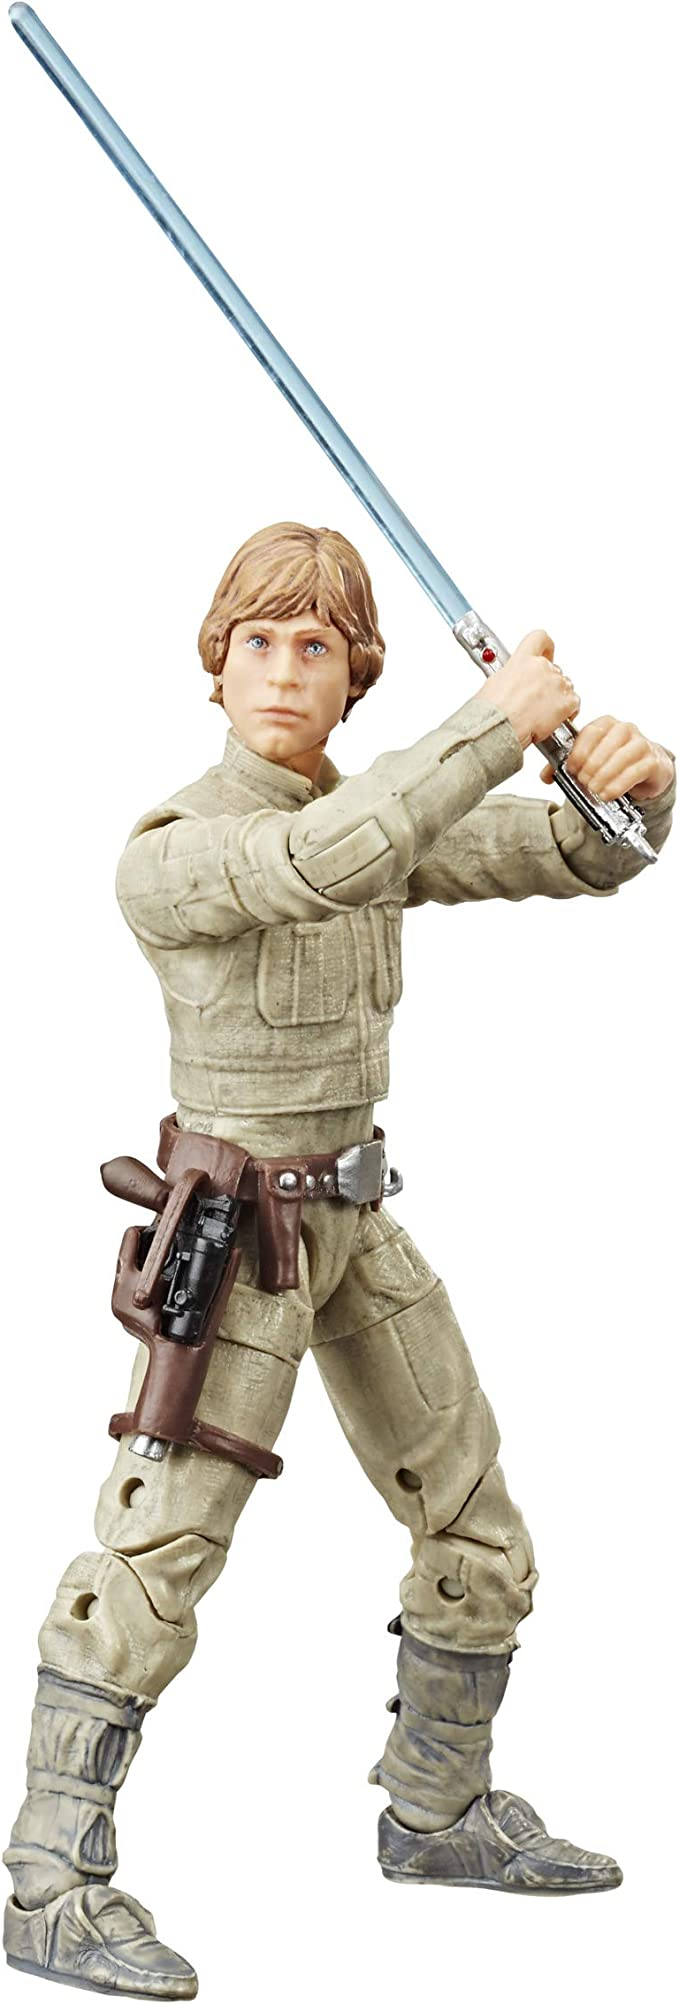 6 pouces Scale Star Wars-NEUF Bespin Star Wars the black series Luke Skywalker